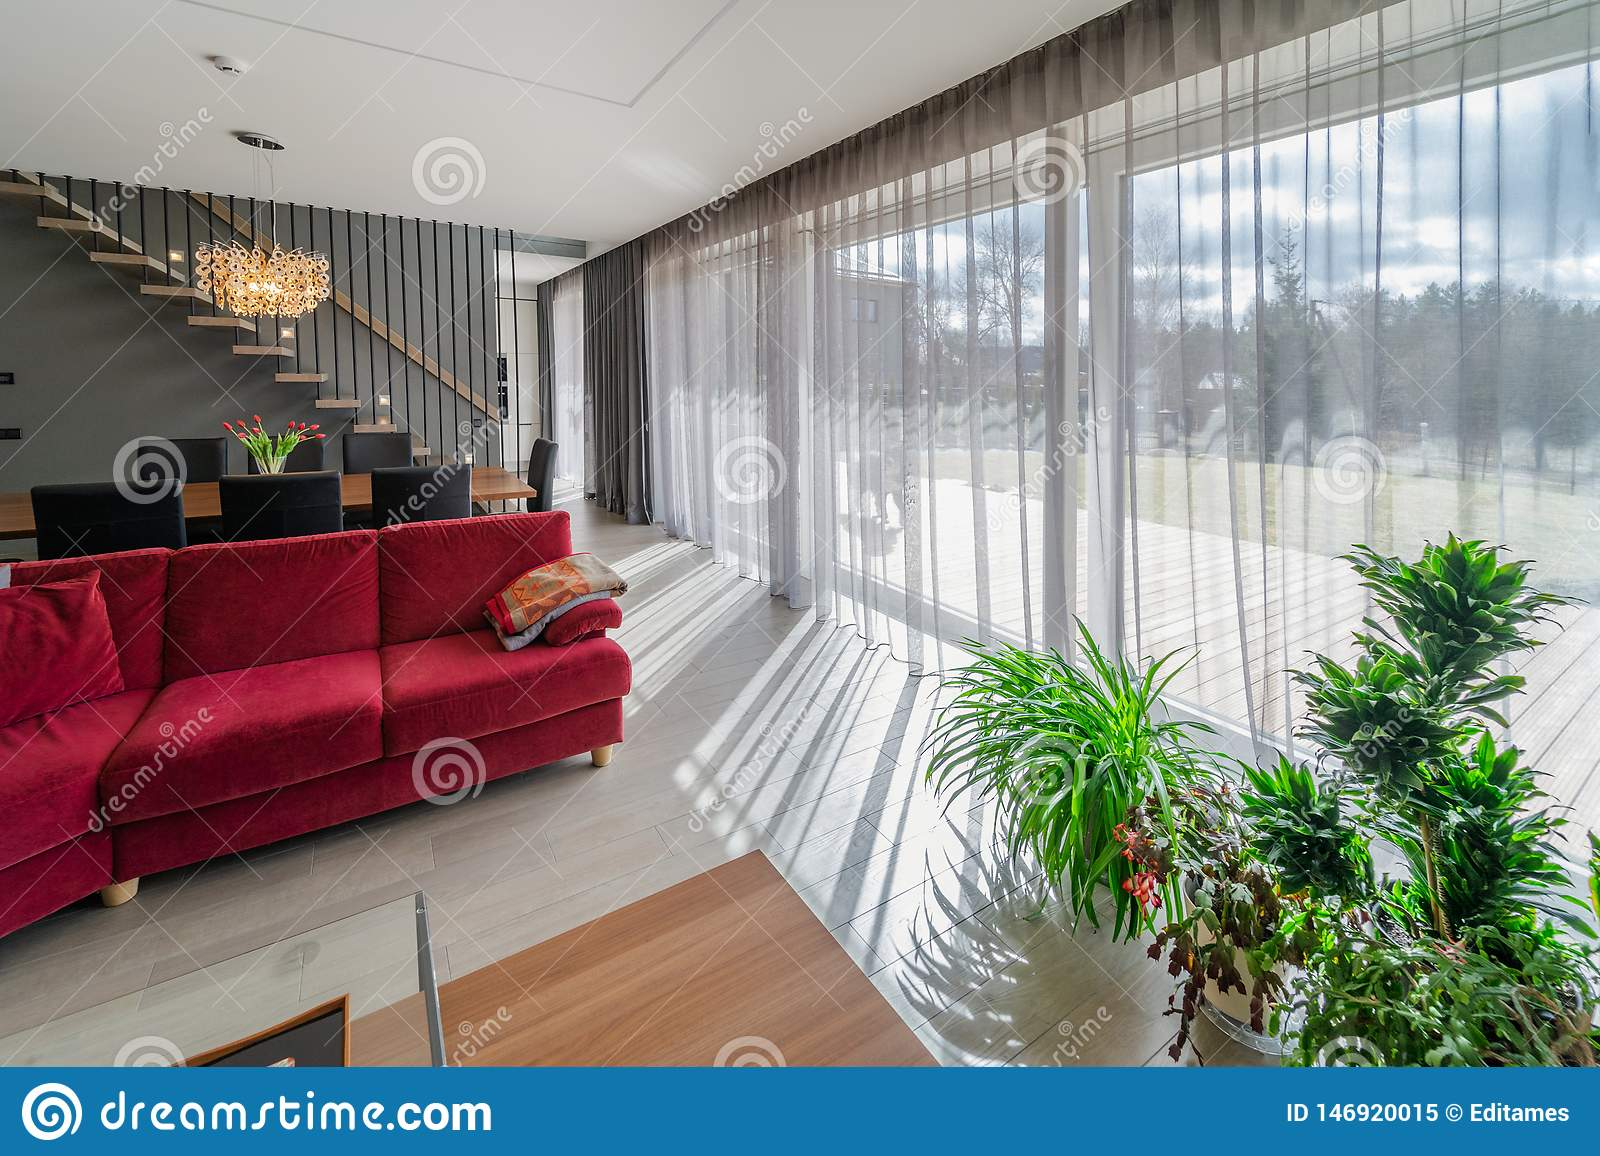 Dining area and living room in the interior of modern house